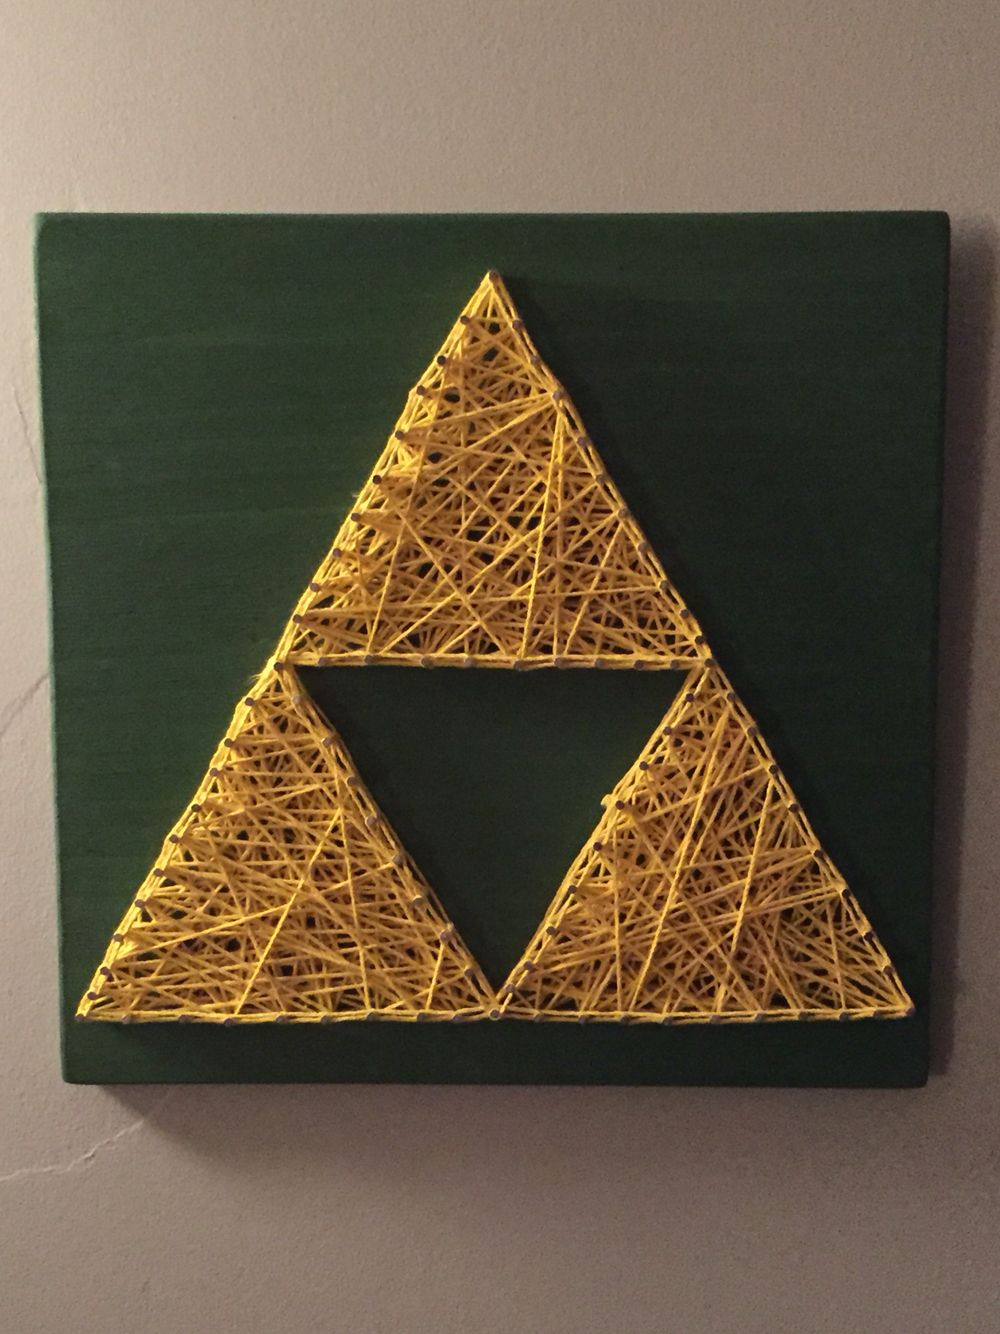 Pin By Dylan Suess On My Creations Pinterest String Art Nail